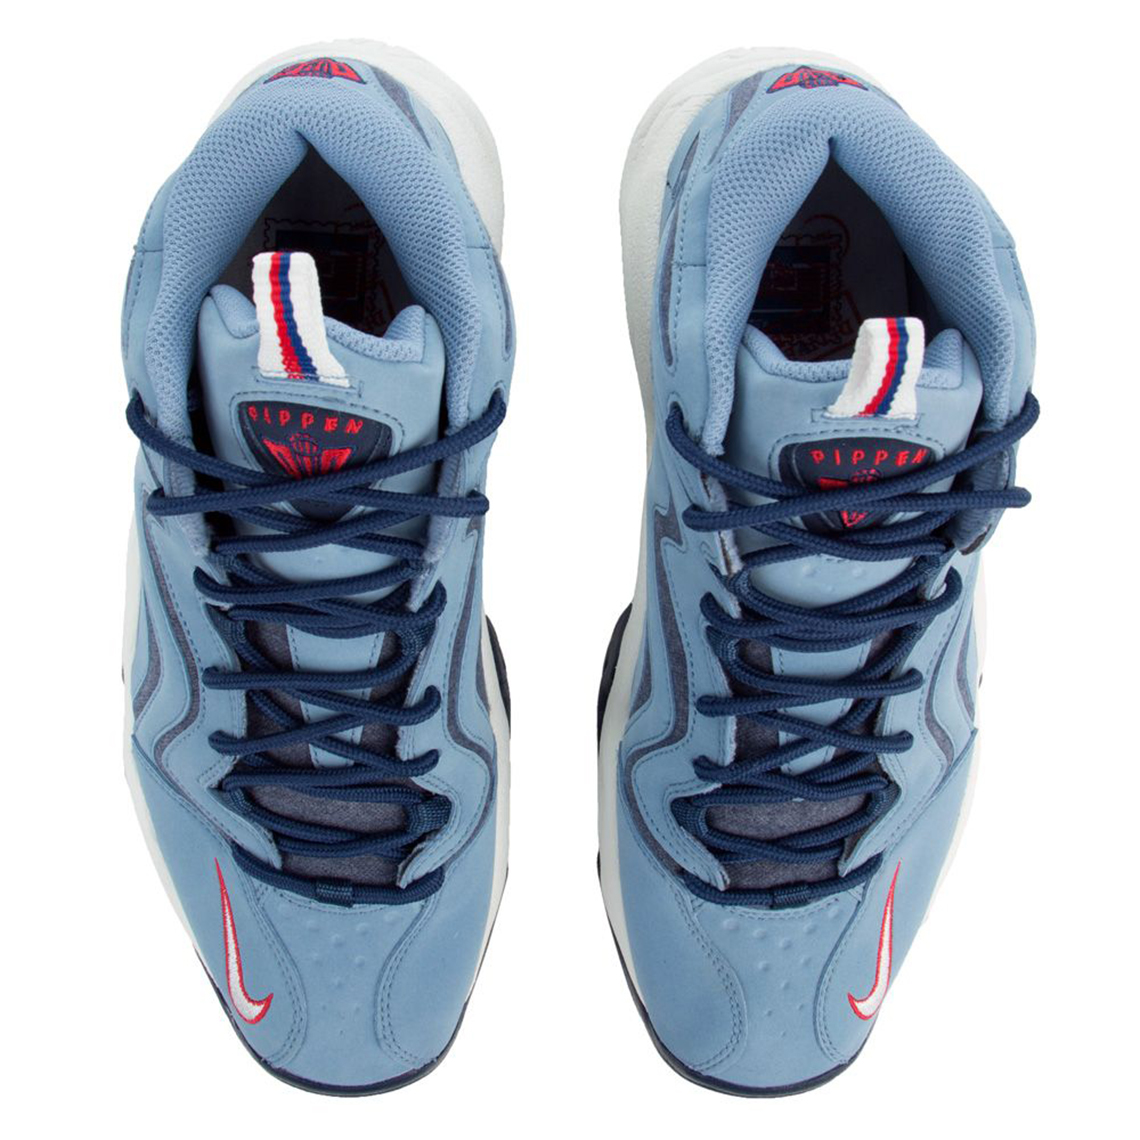 713dd6c20334e Nike Air Pippen 1 $160. Color: WORK BLUE/UNIVERSITY RED/SUMMIT WHITE Style  Code: 325001-403. Advertisement. Advertisement